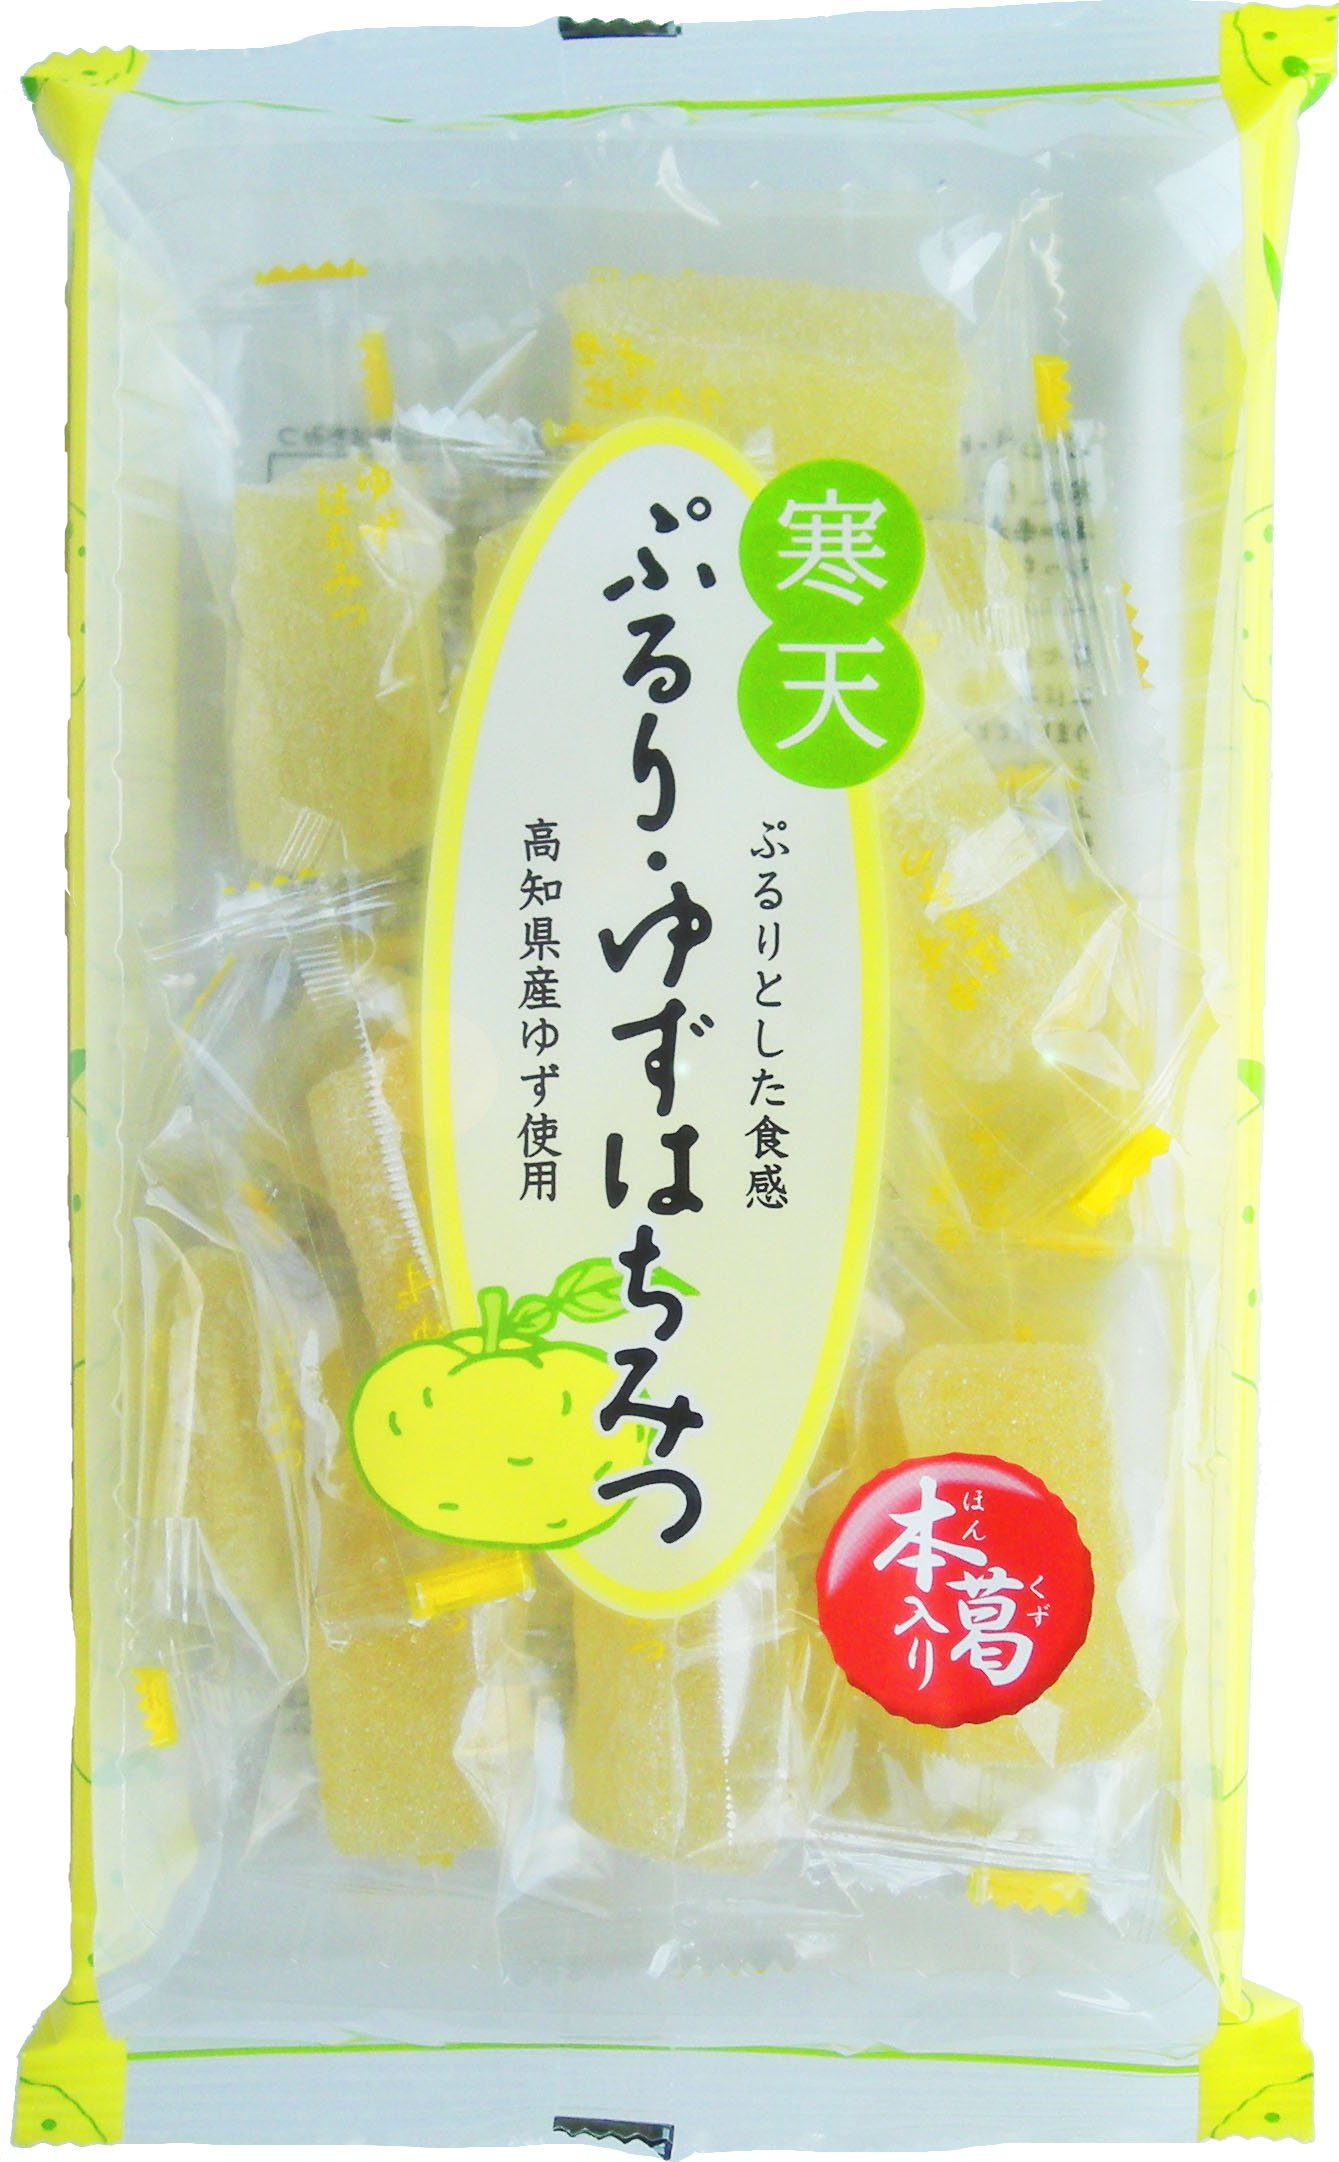 Tsuyama-ya confectionery Pururi-yuzu honey 210gX12 bags